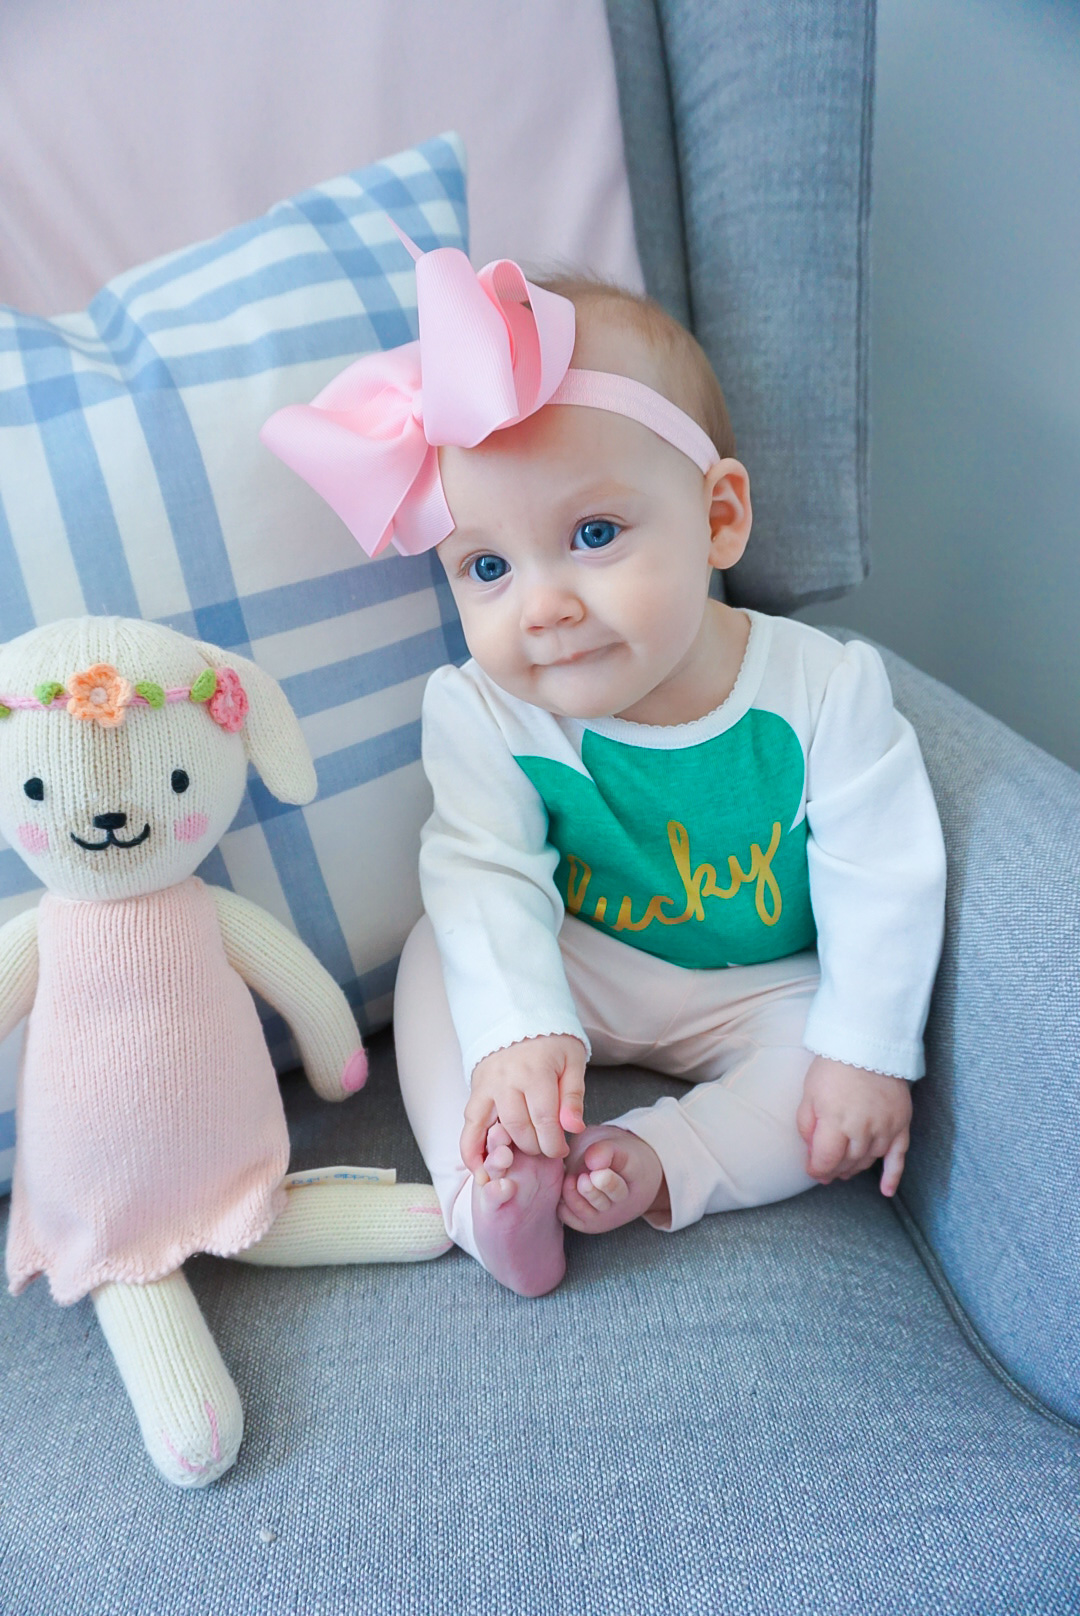 baby's first St. Patrick's Day, 9 month old baby blog, 9 month old baby schedule, baby blog 2020